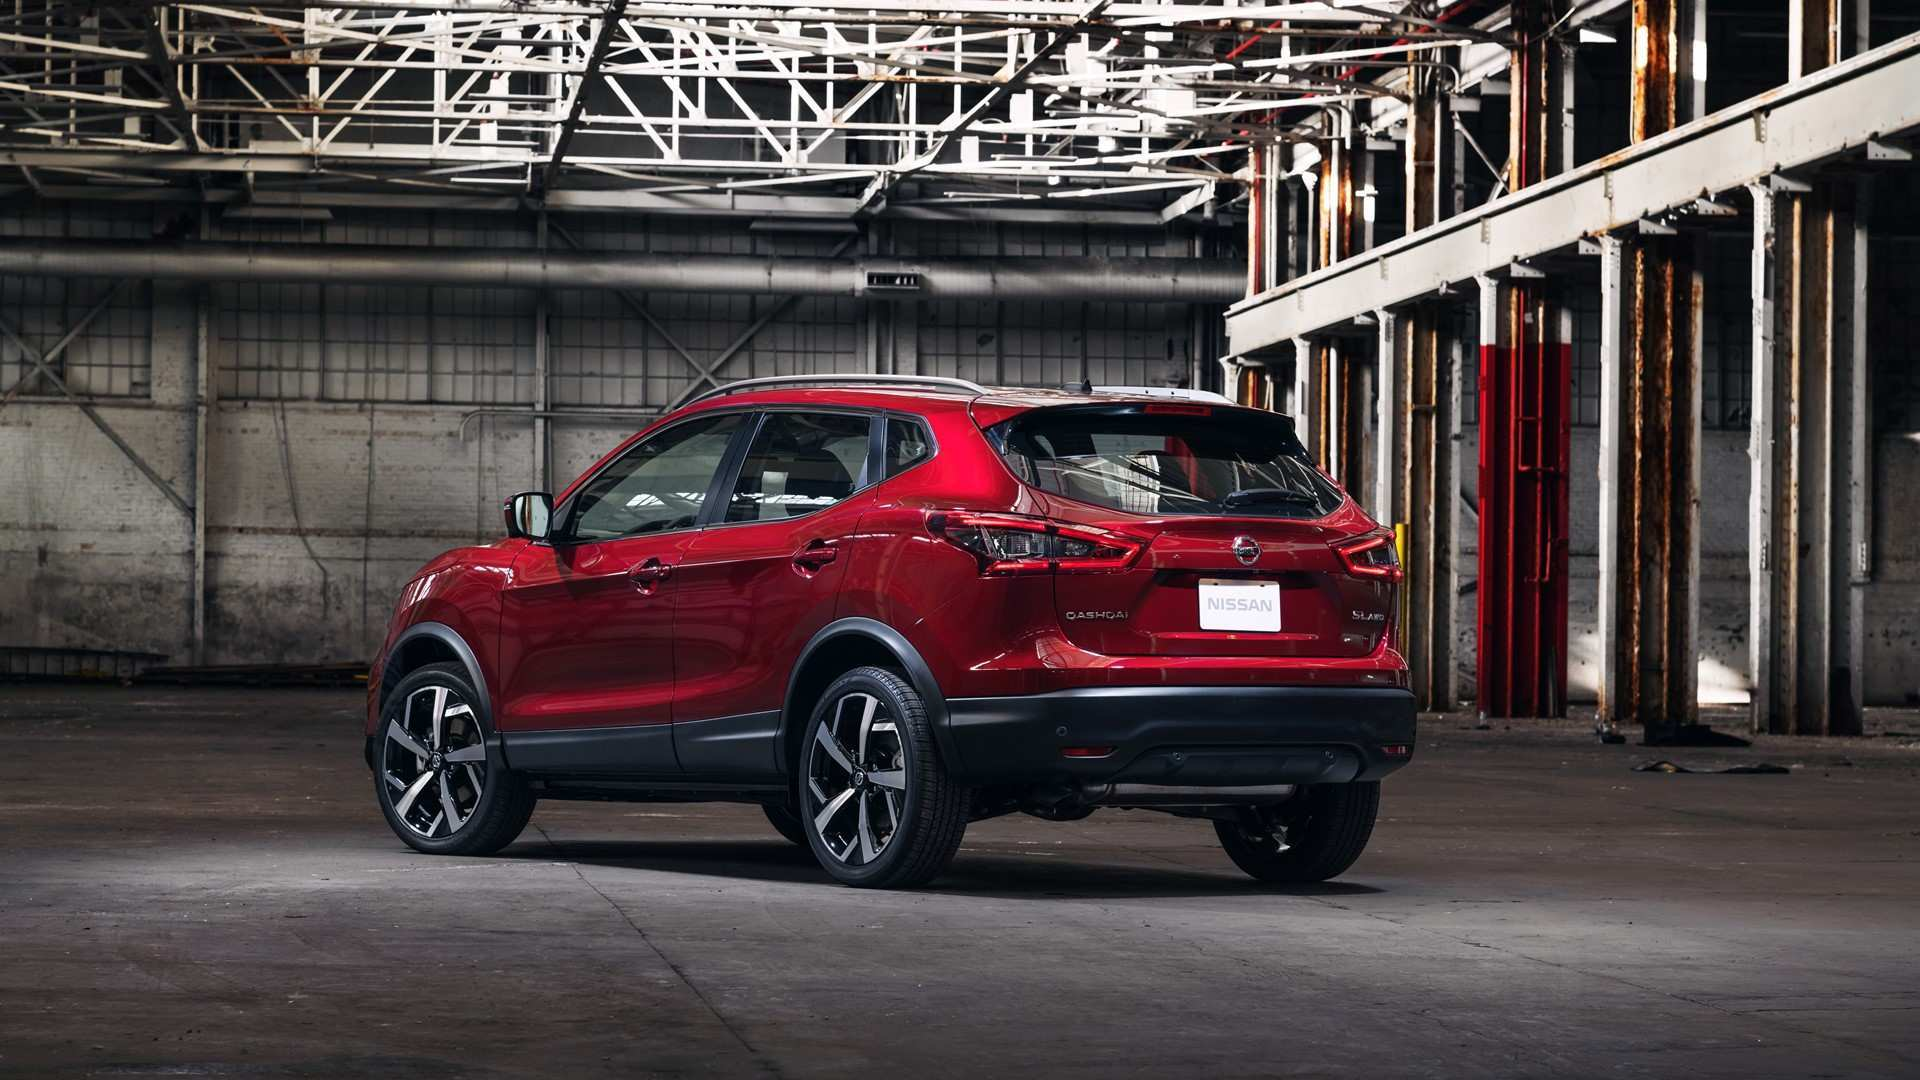 49 New Nissan Modelo 2020 Picture